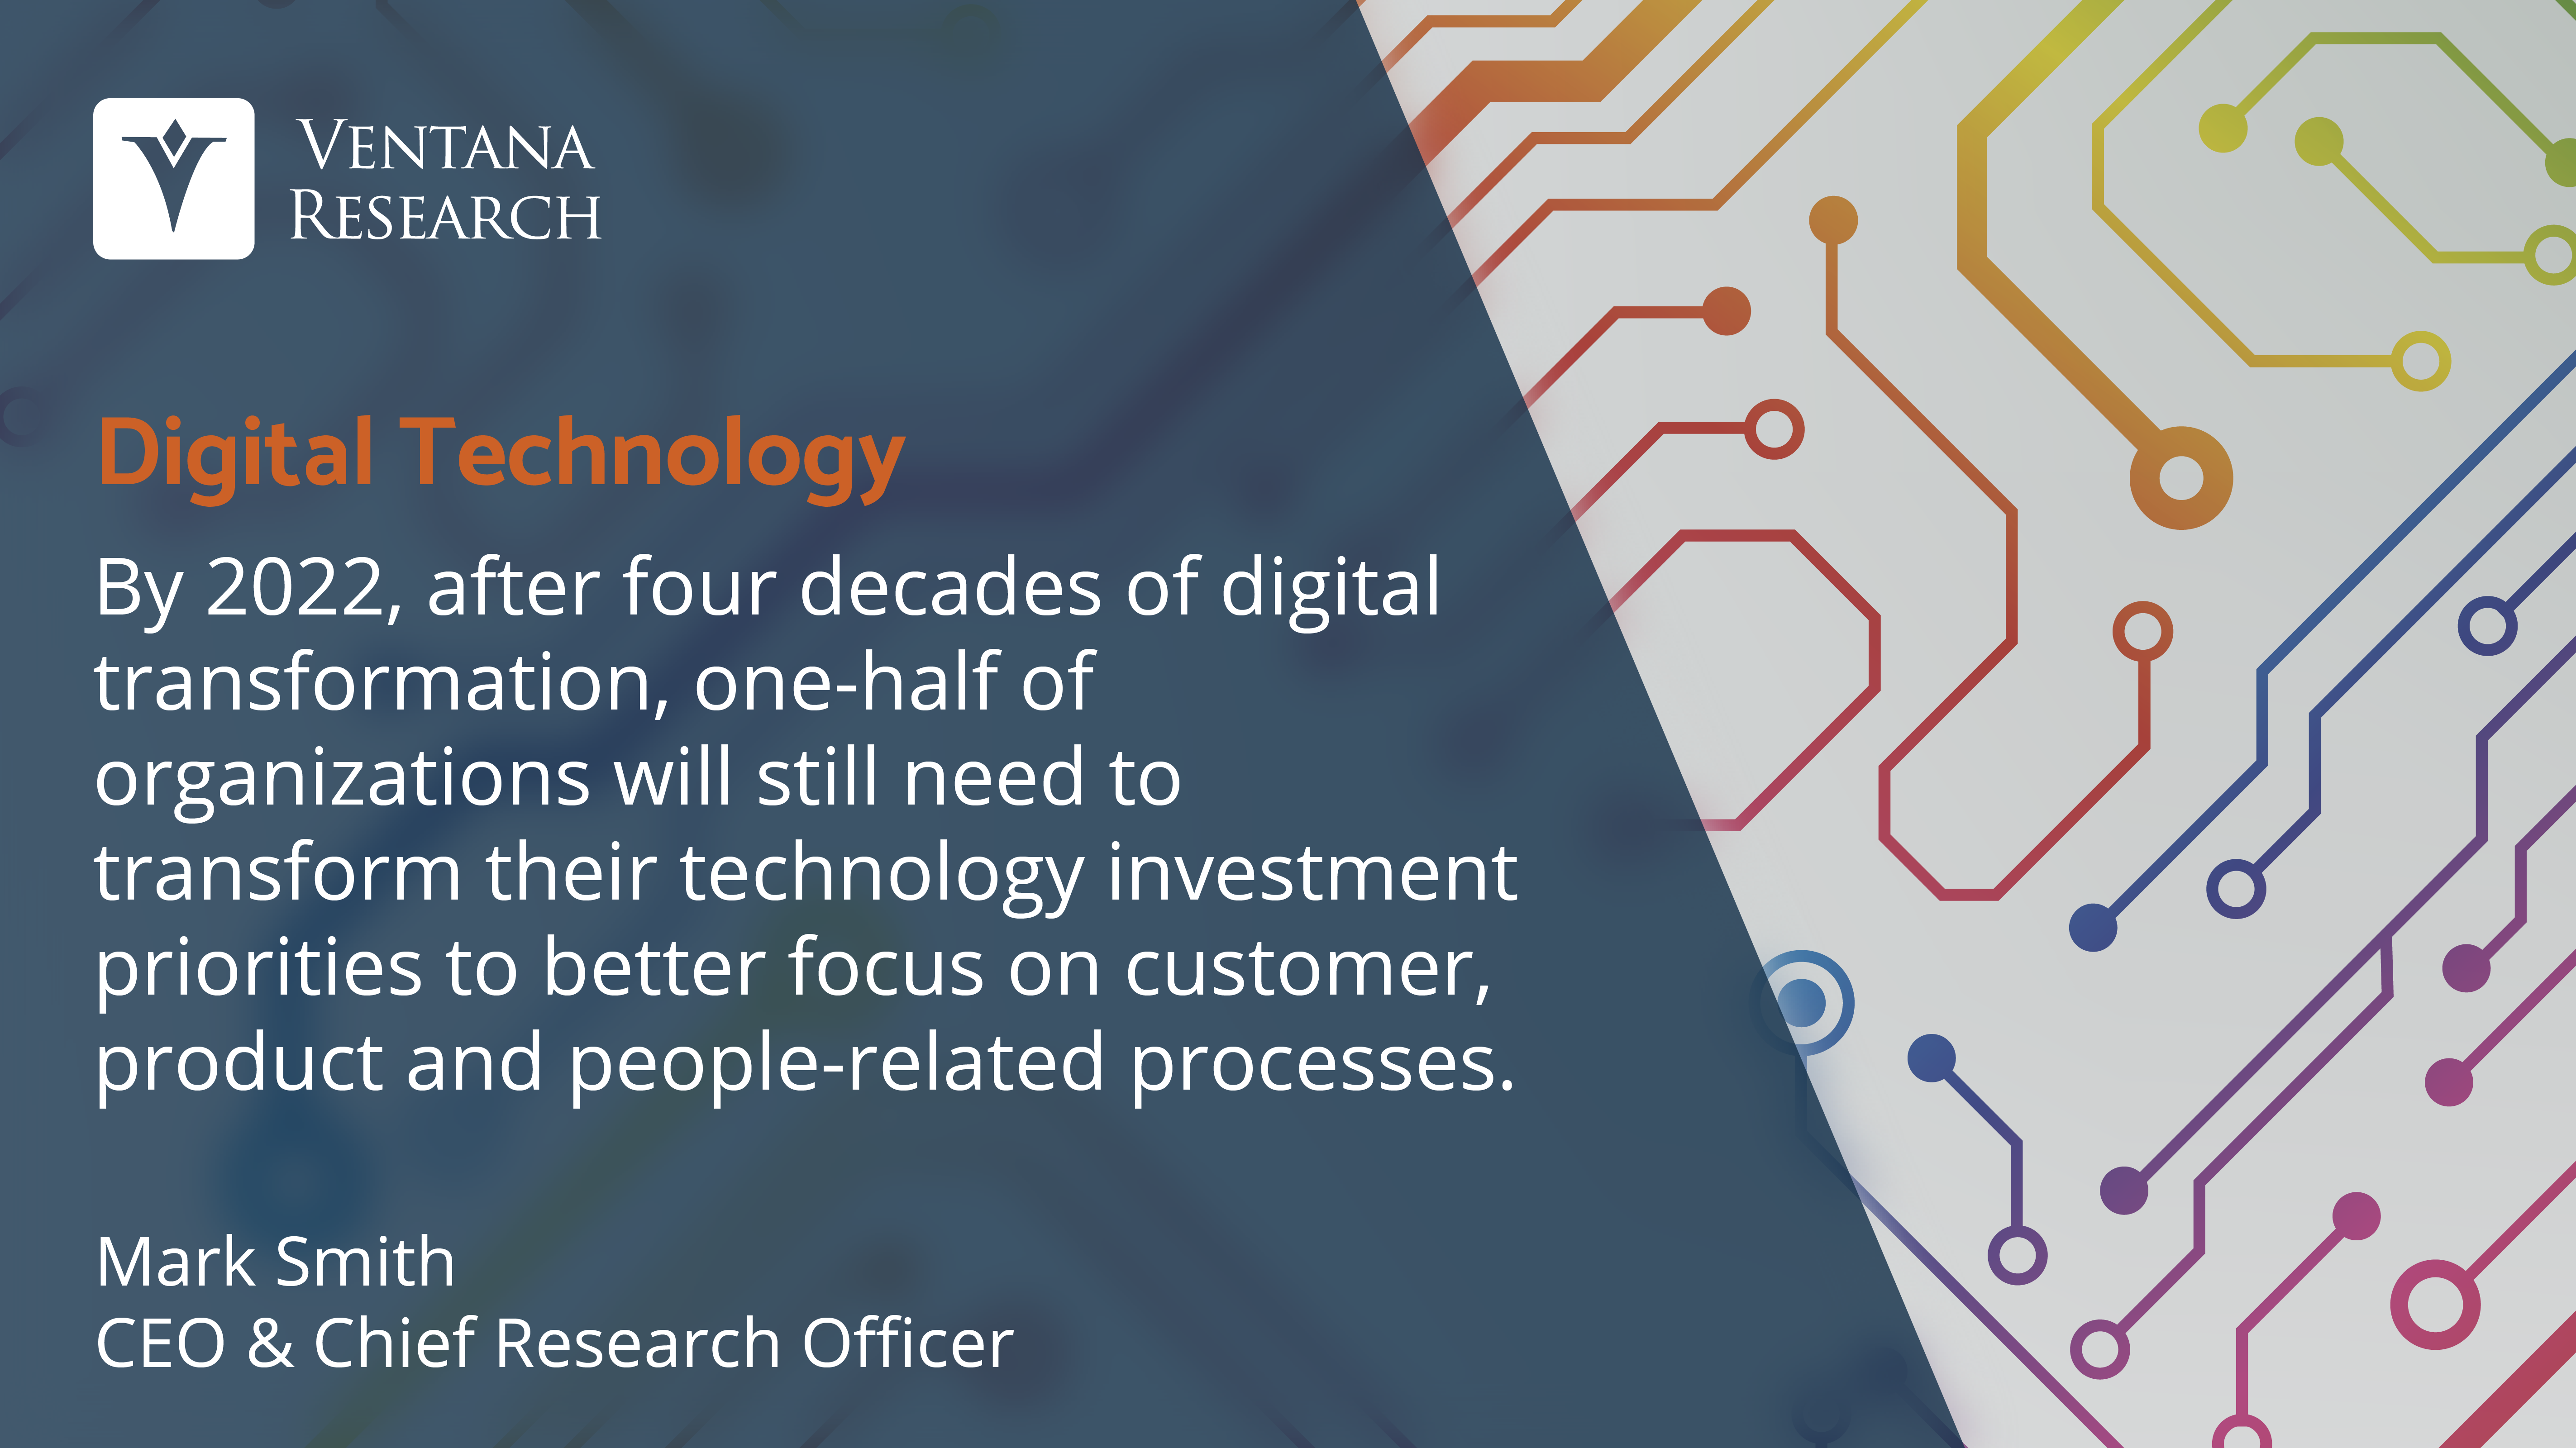 Ventana_Research_2020_Assertion_Digital_Tech